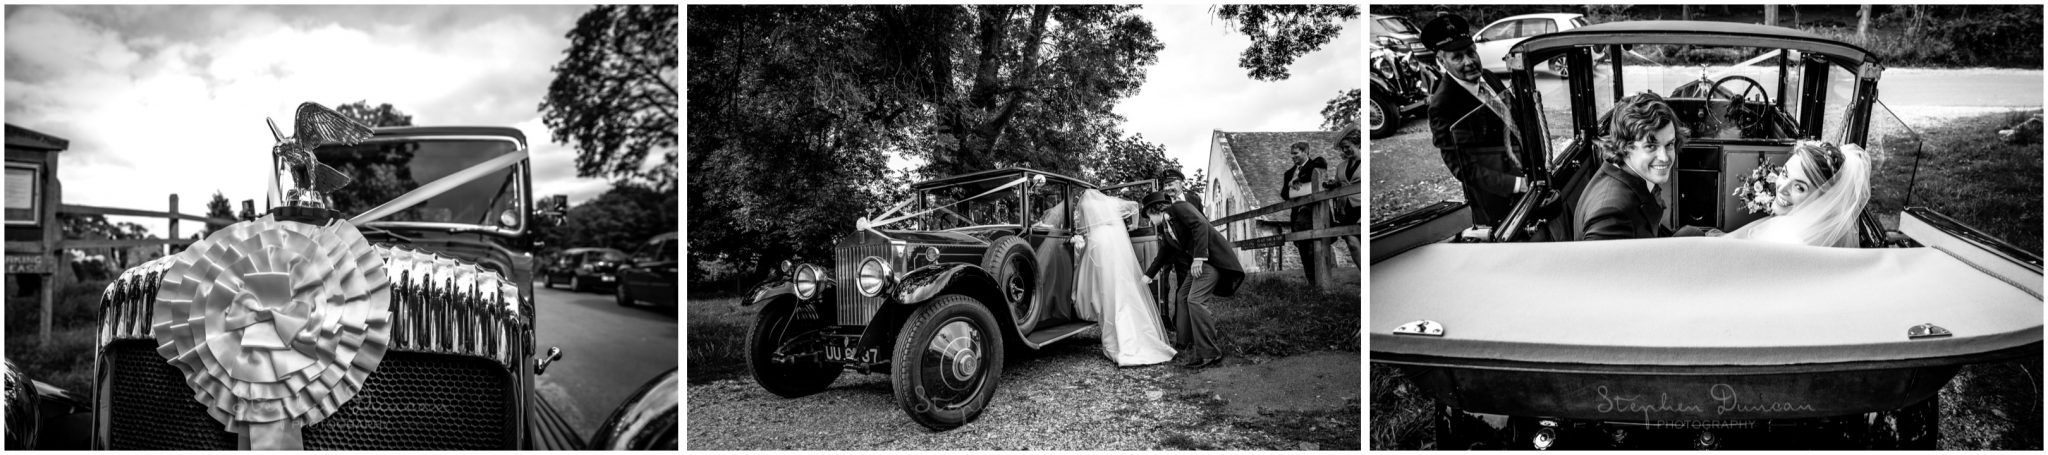 Lymington wedding photography couple in wedding car